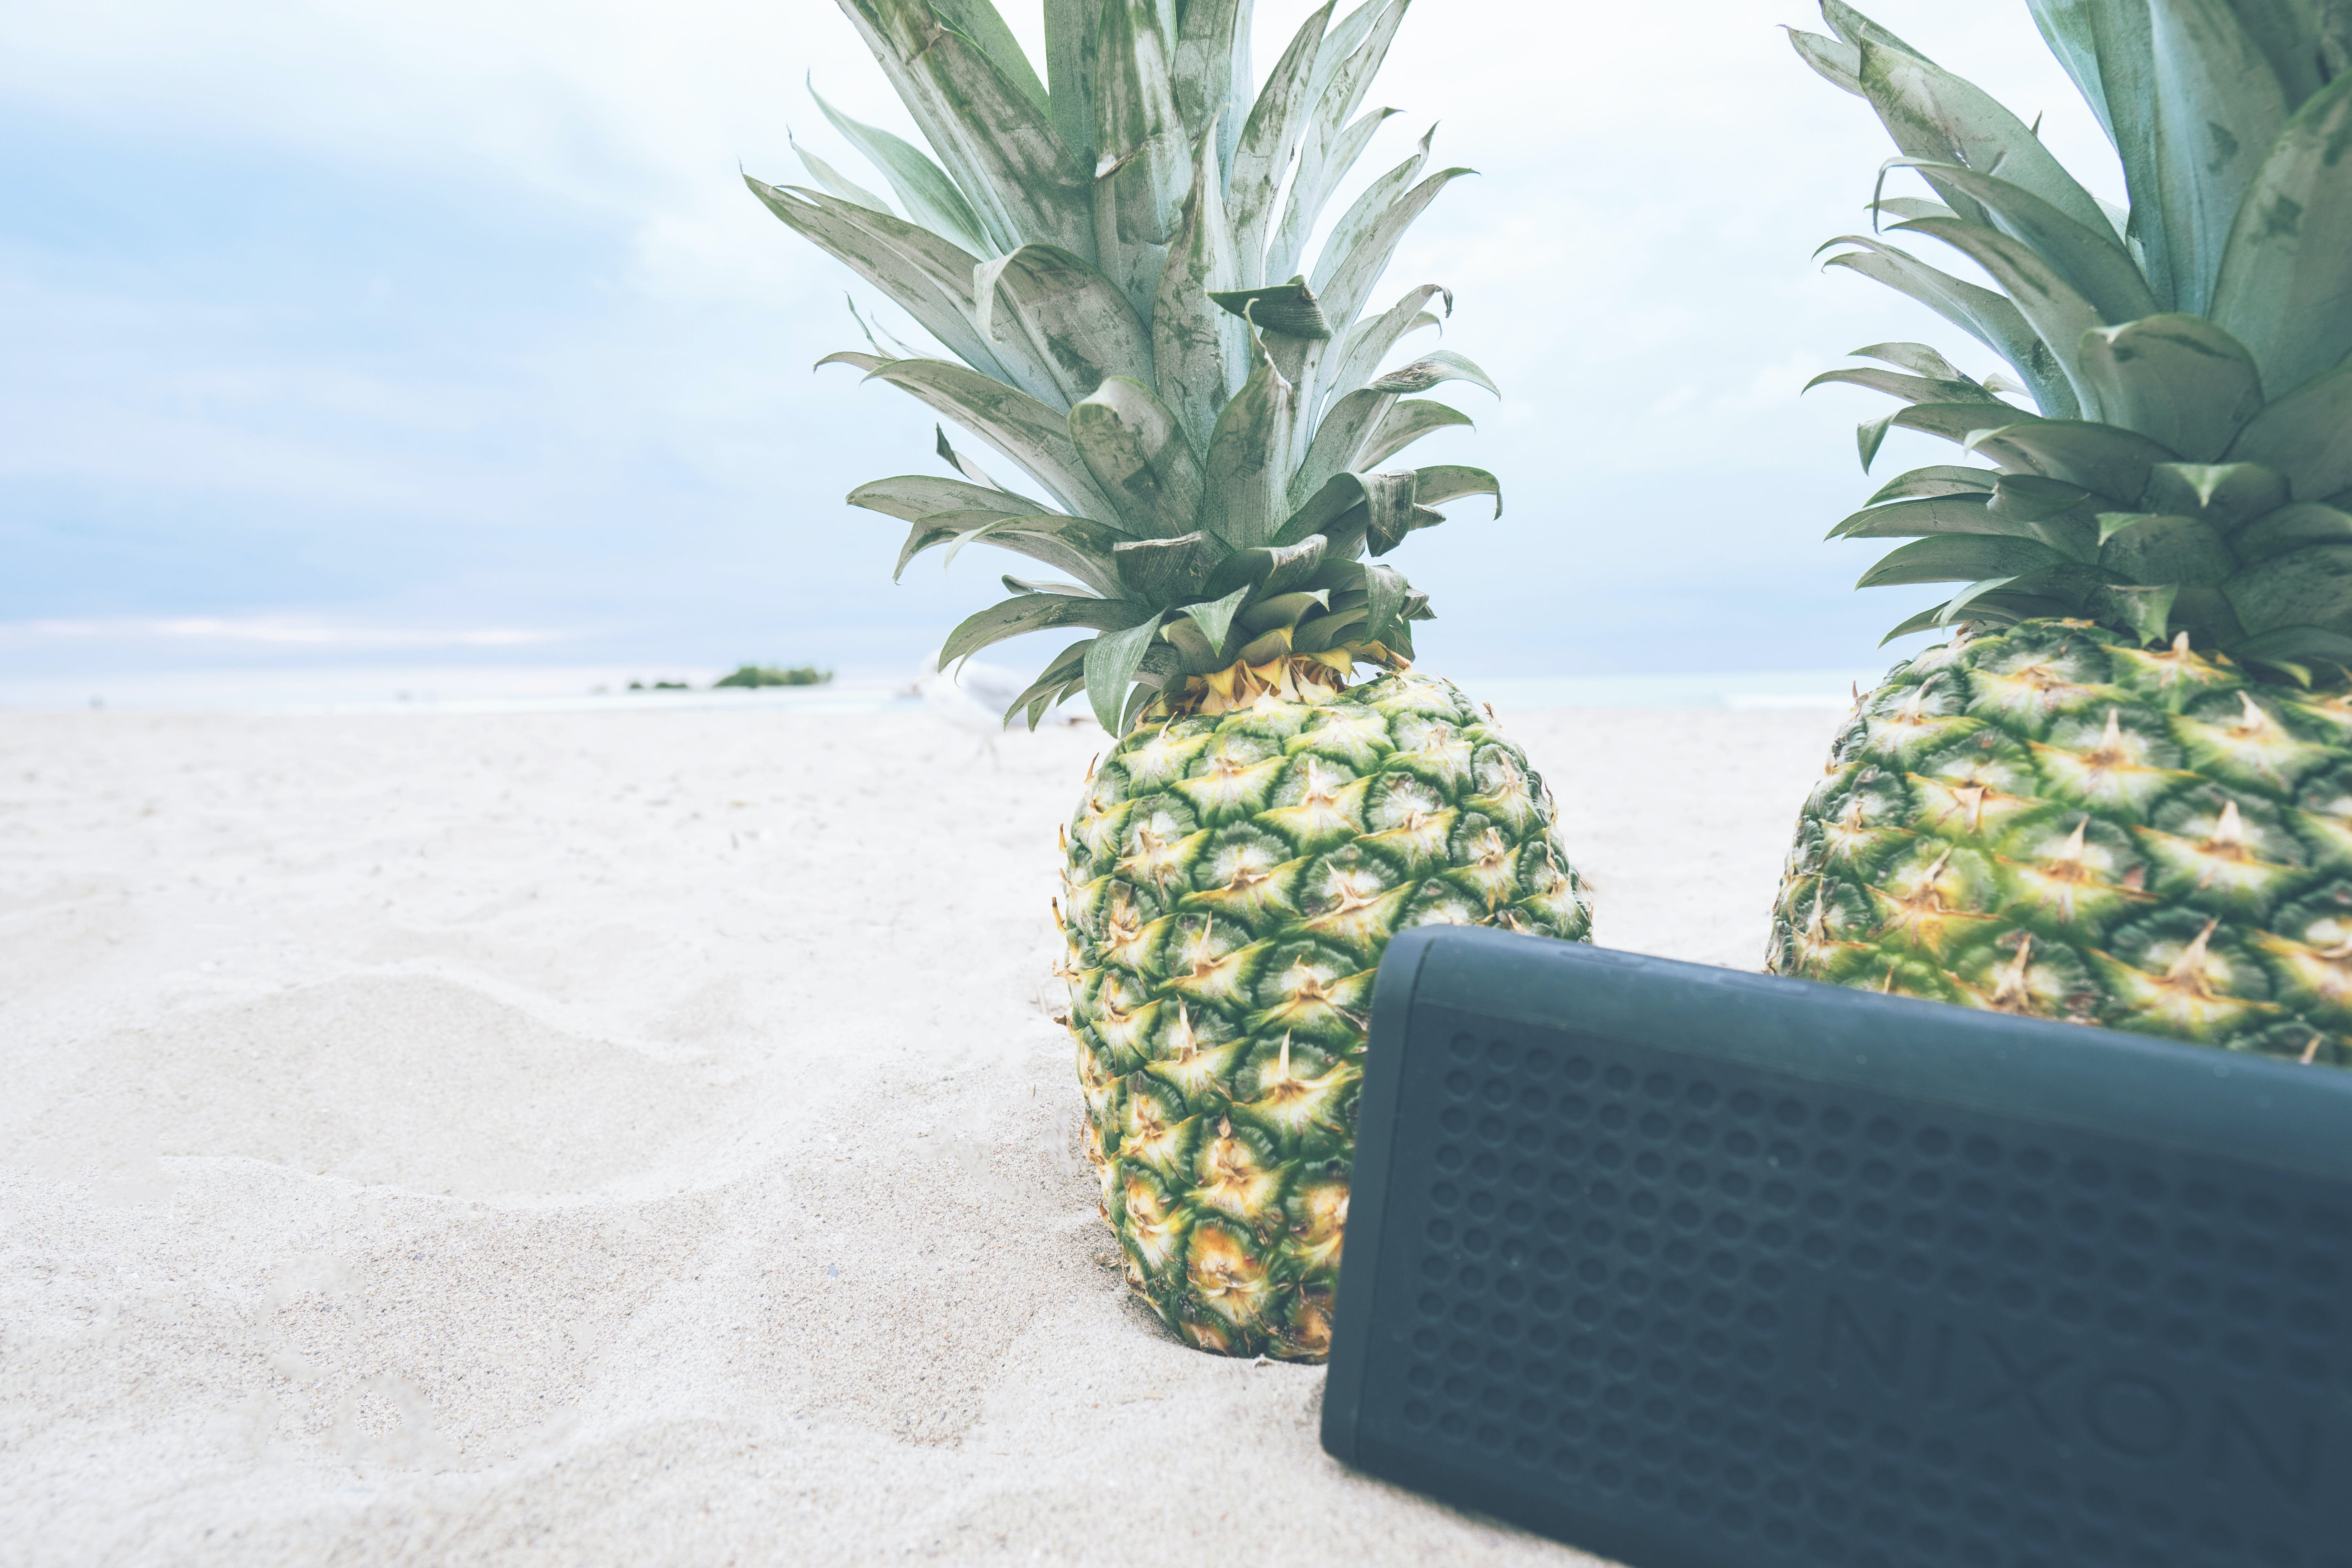 Two Green Pineapple Fruits on Sand